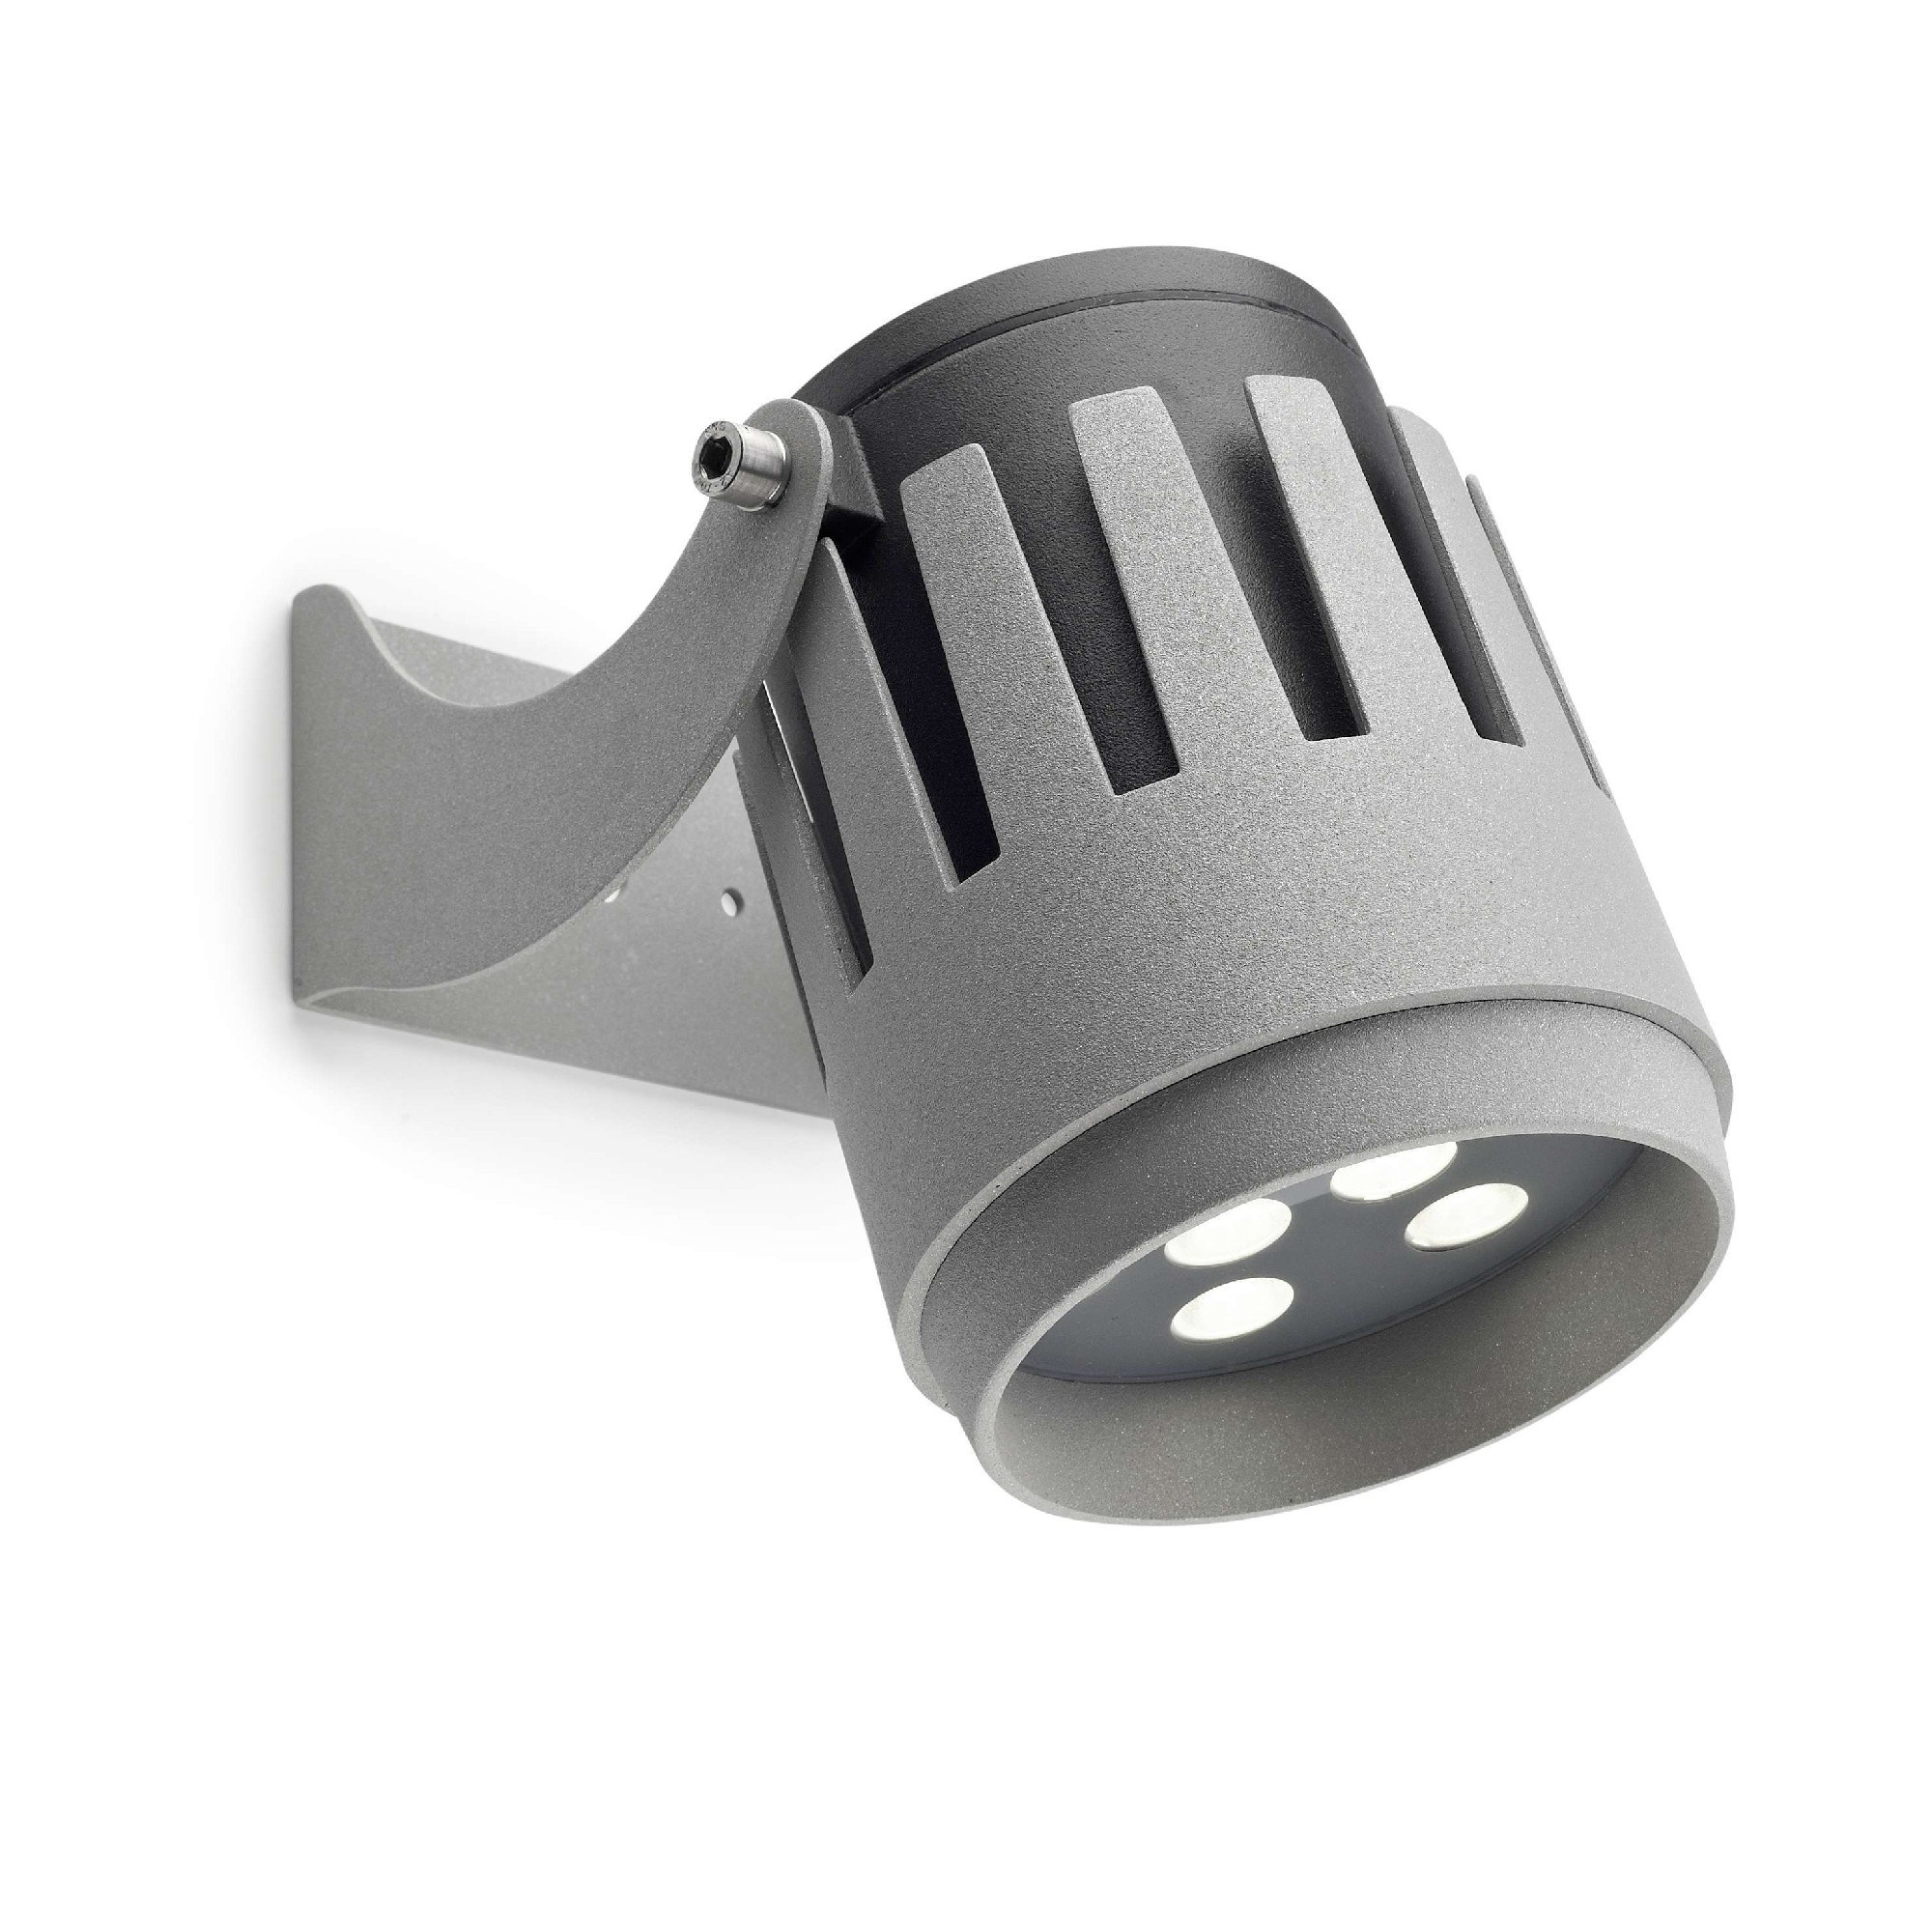 Leds C4 OUTDOOR 05 9856 34 CMV1 LED lampen